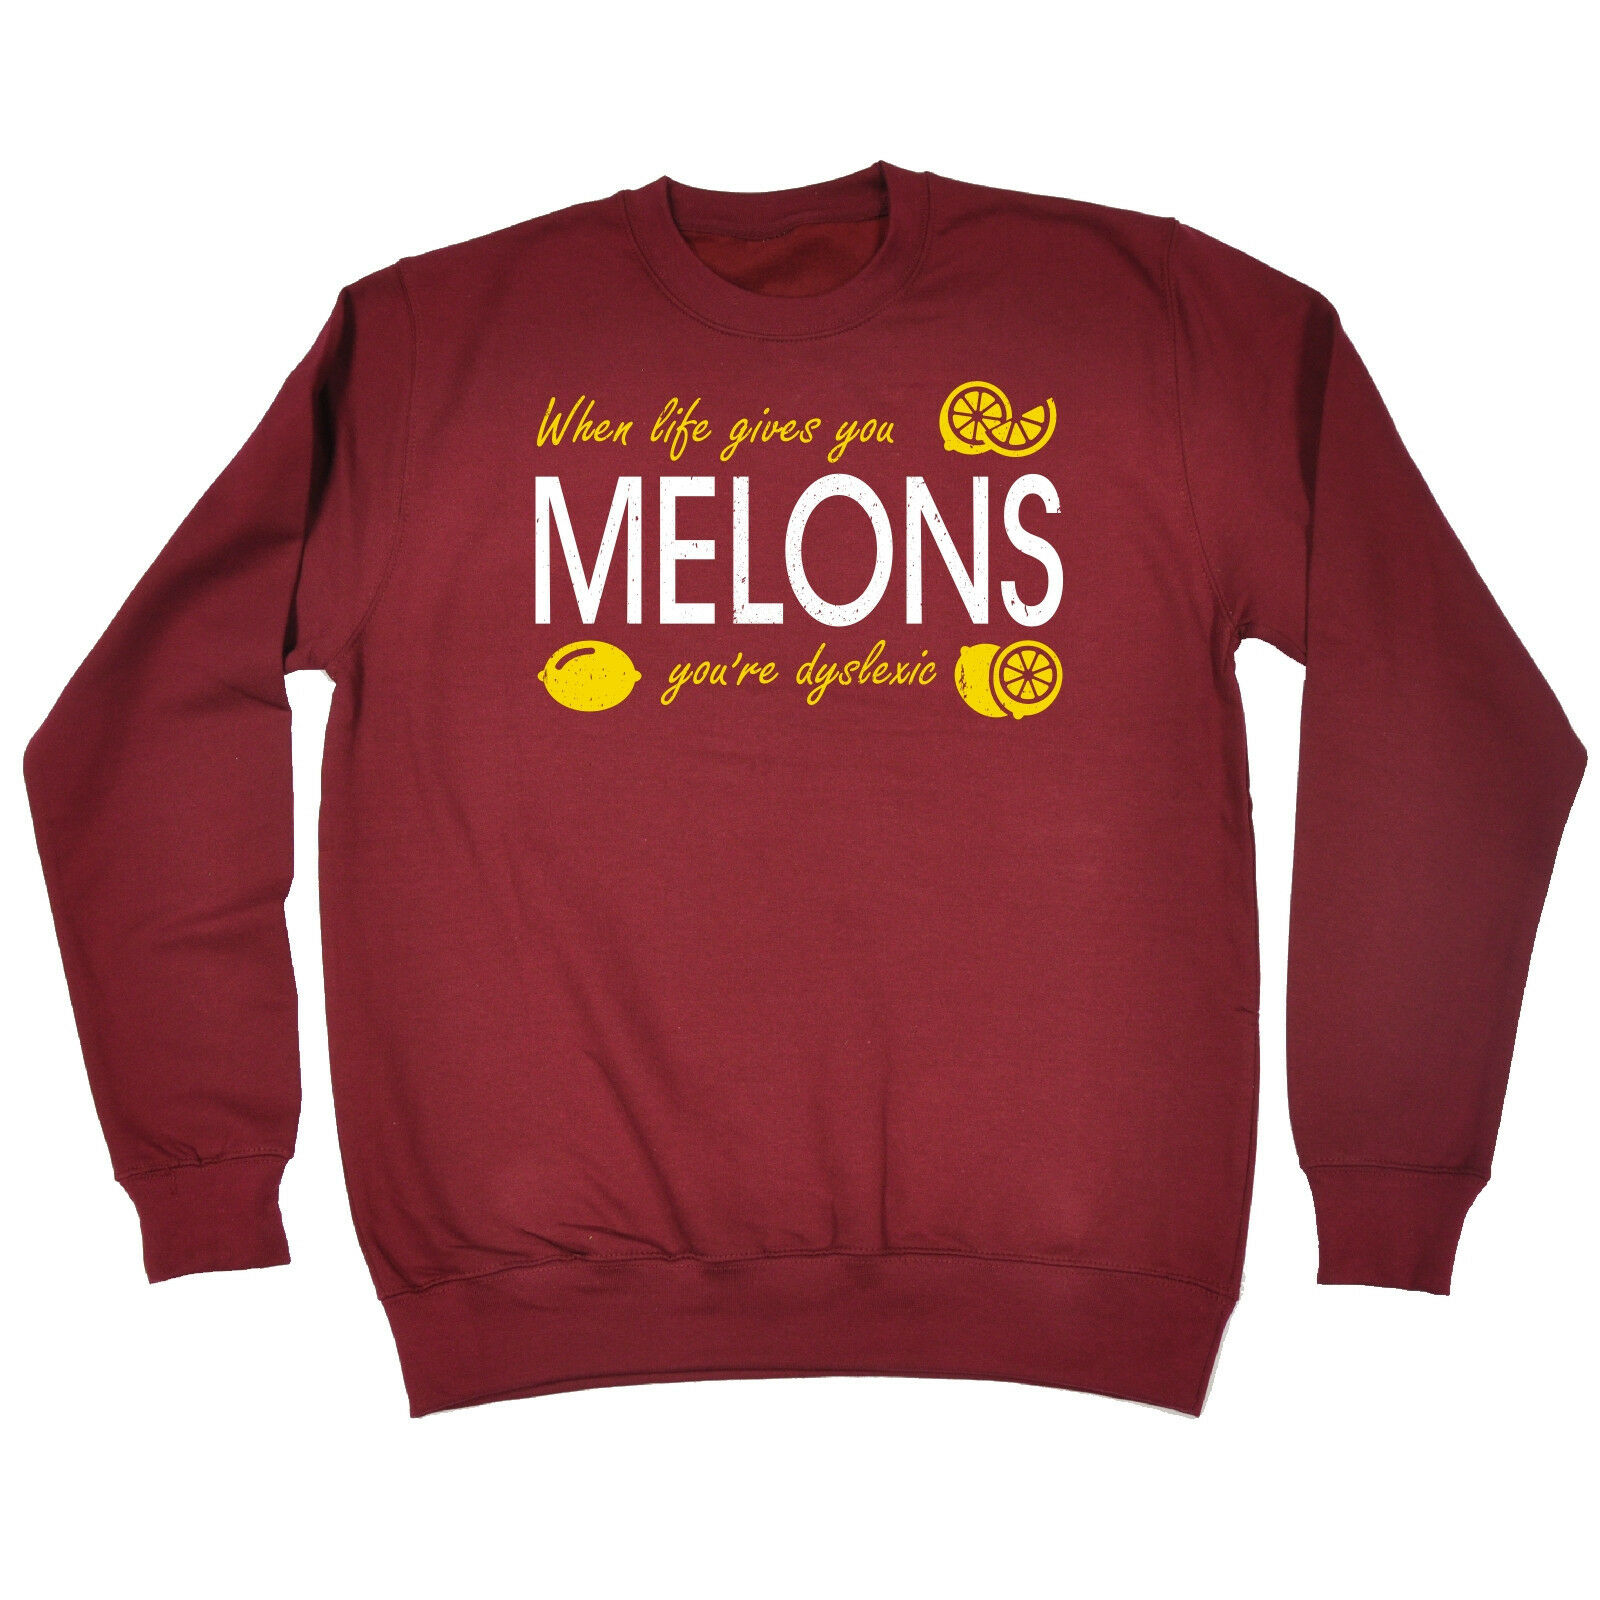 When Life Gives You Melons SWEATSHIRT birthday gift fashion geek nerd funny